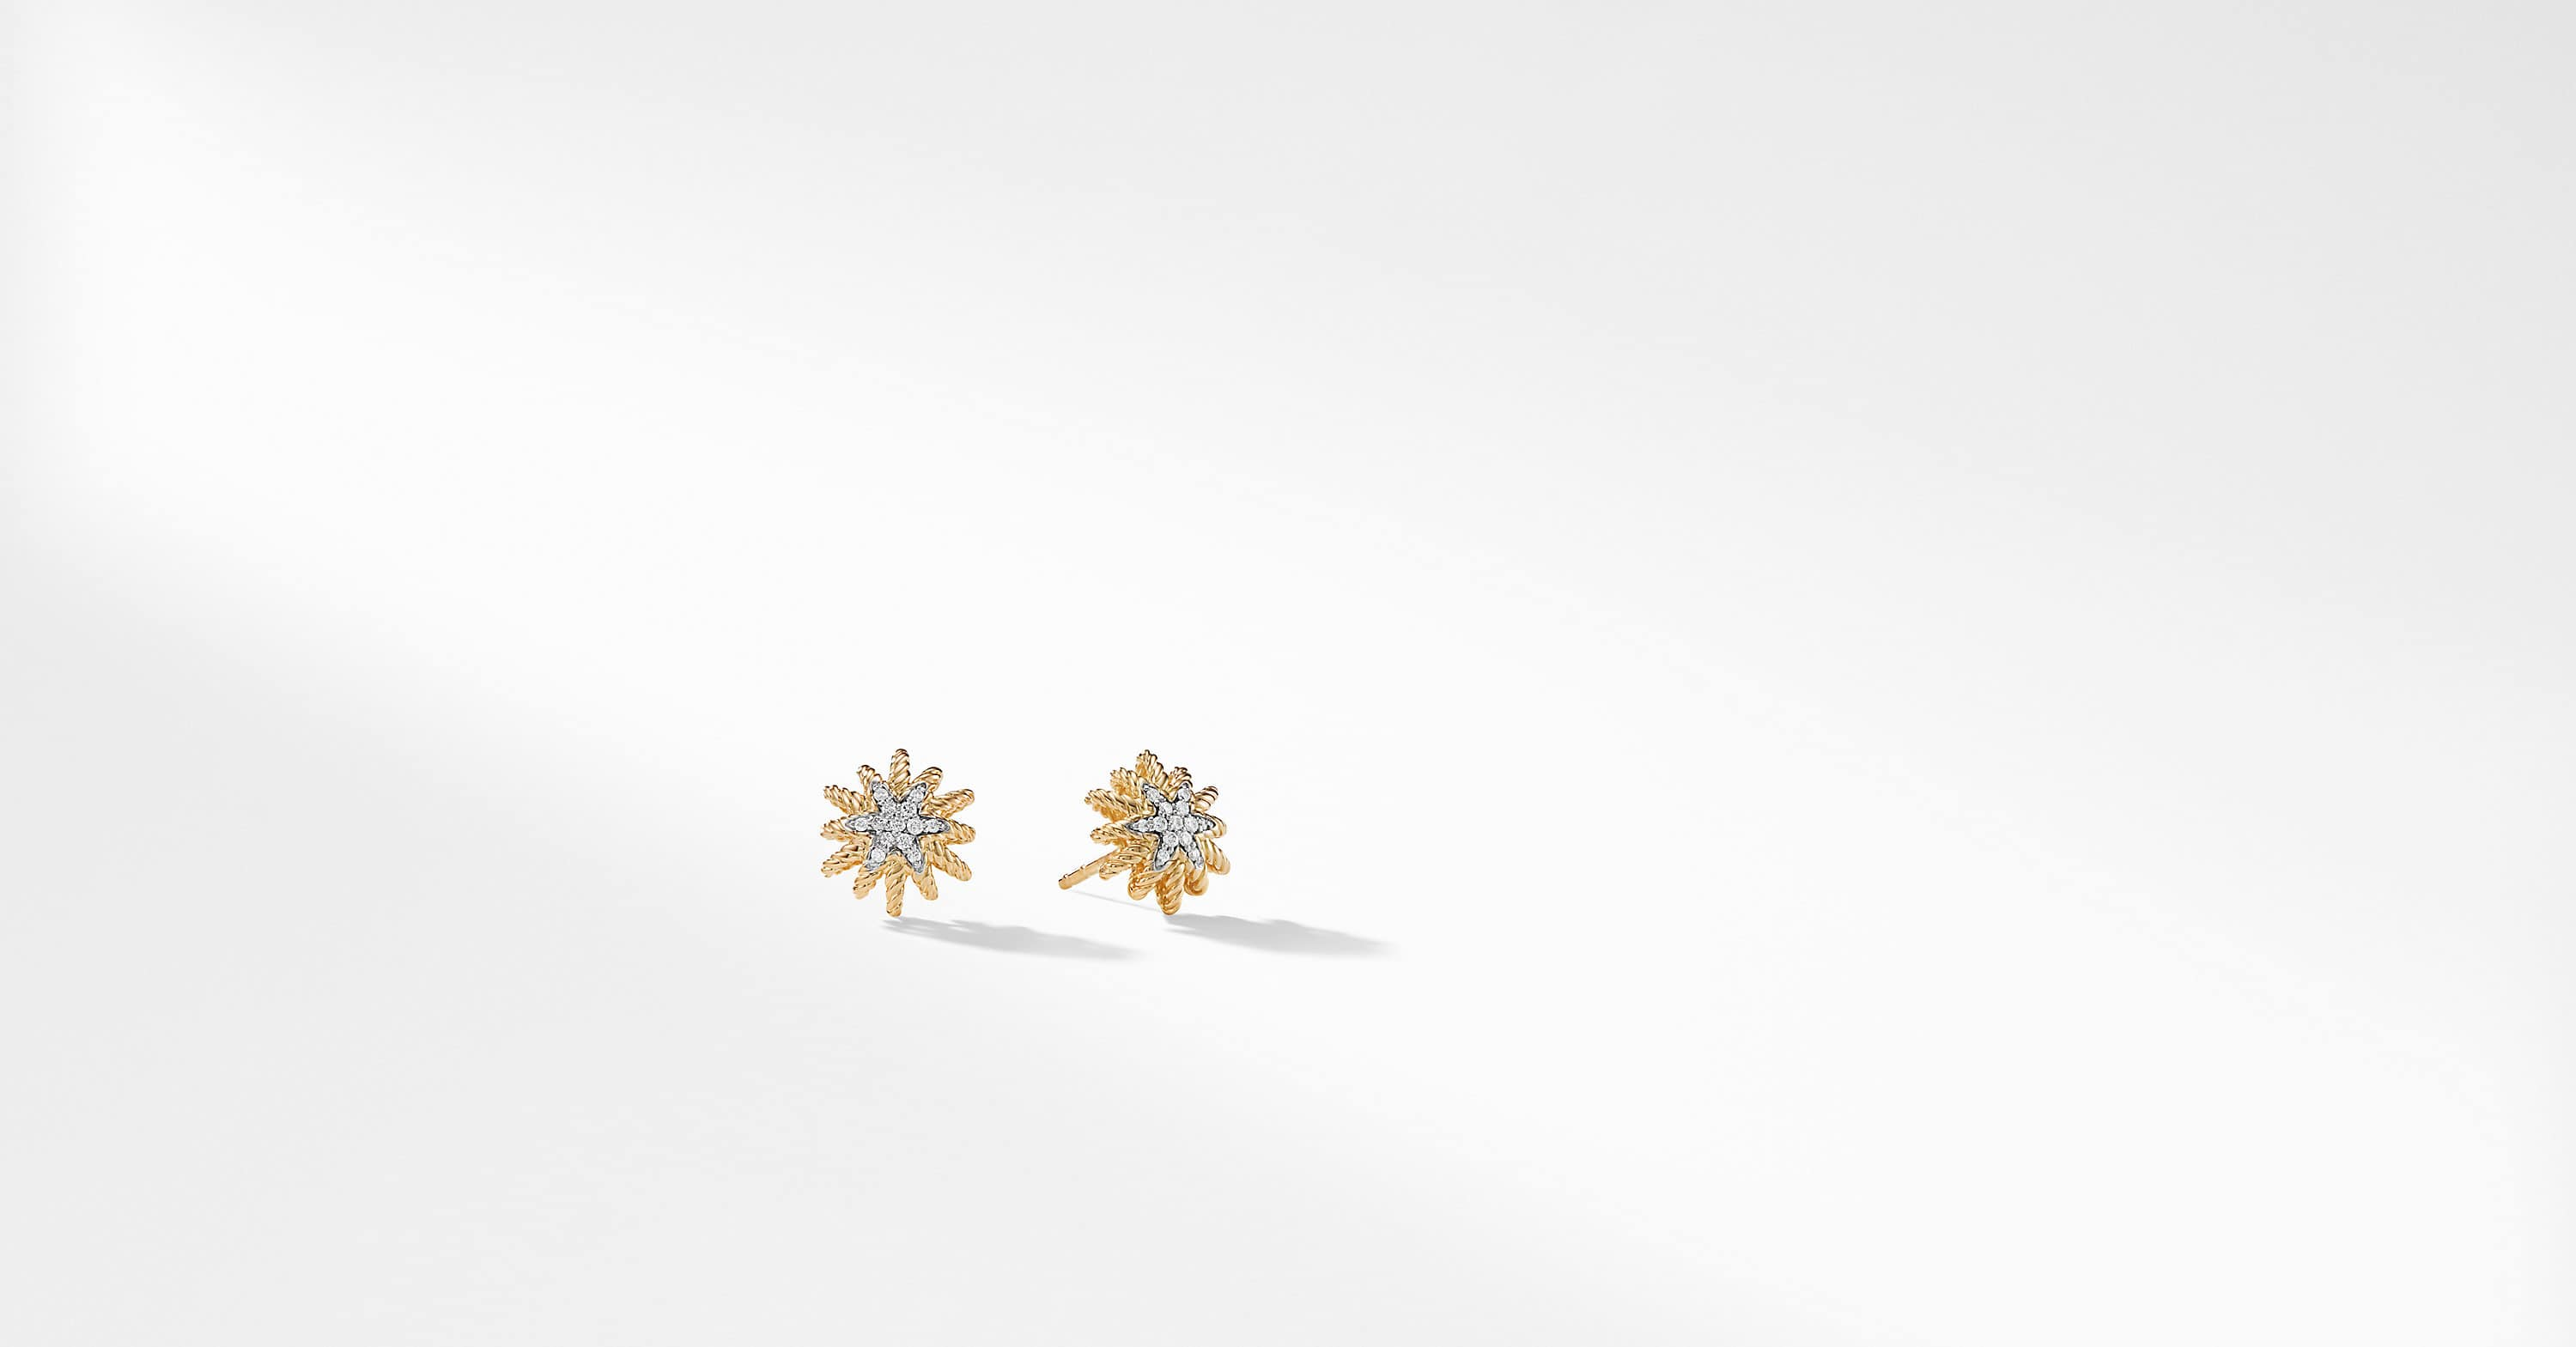 Starburst Earrings with Diamonds in 18K Gold, 10mm